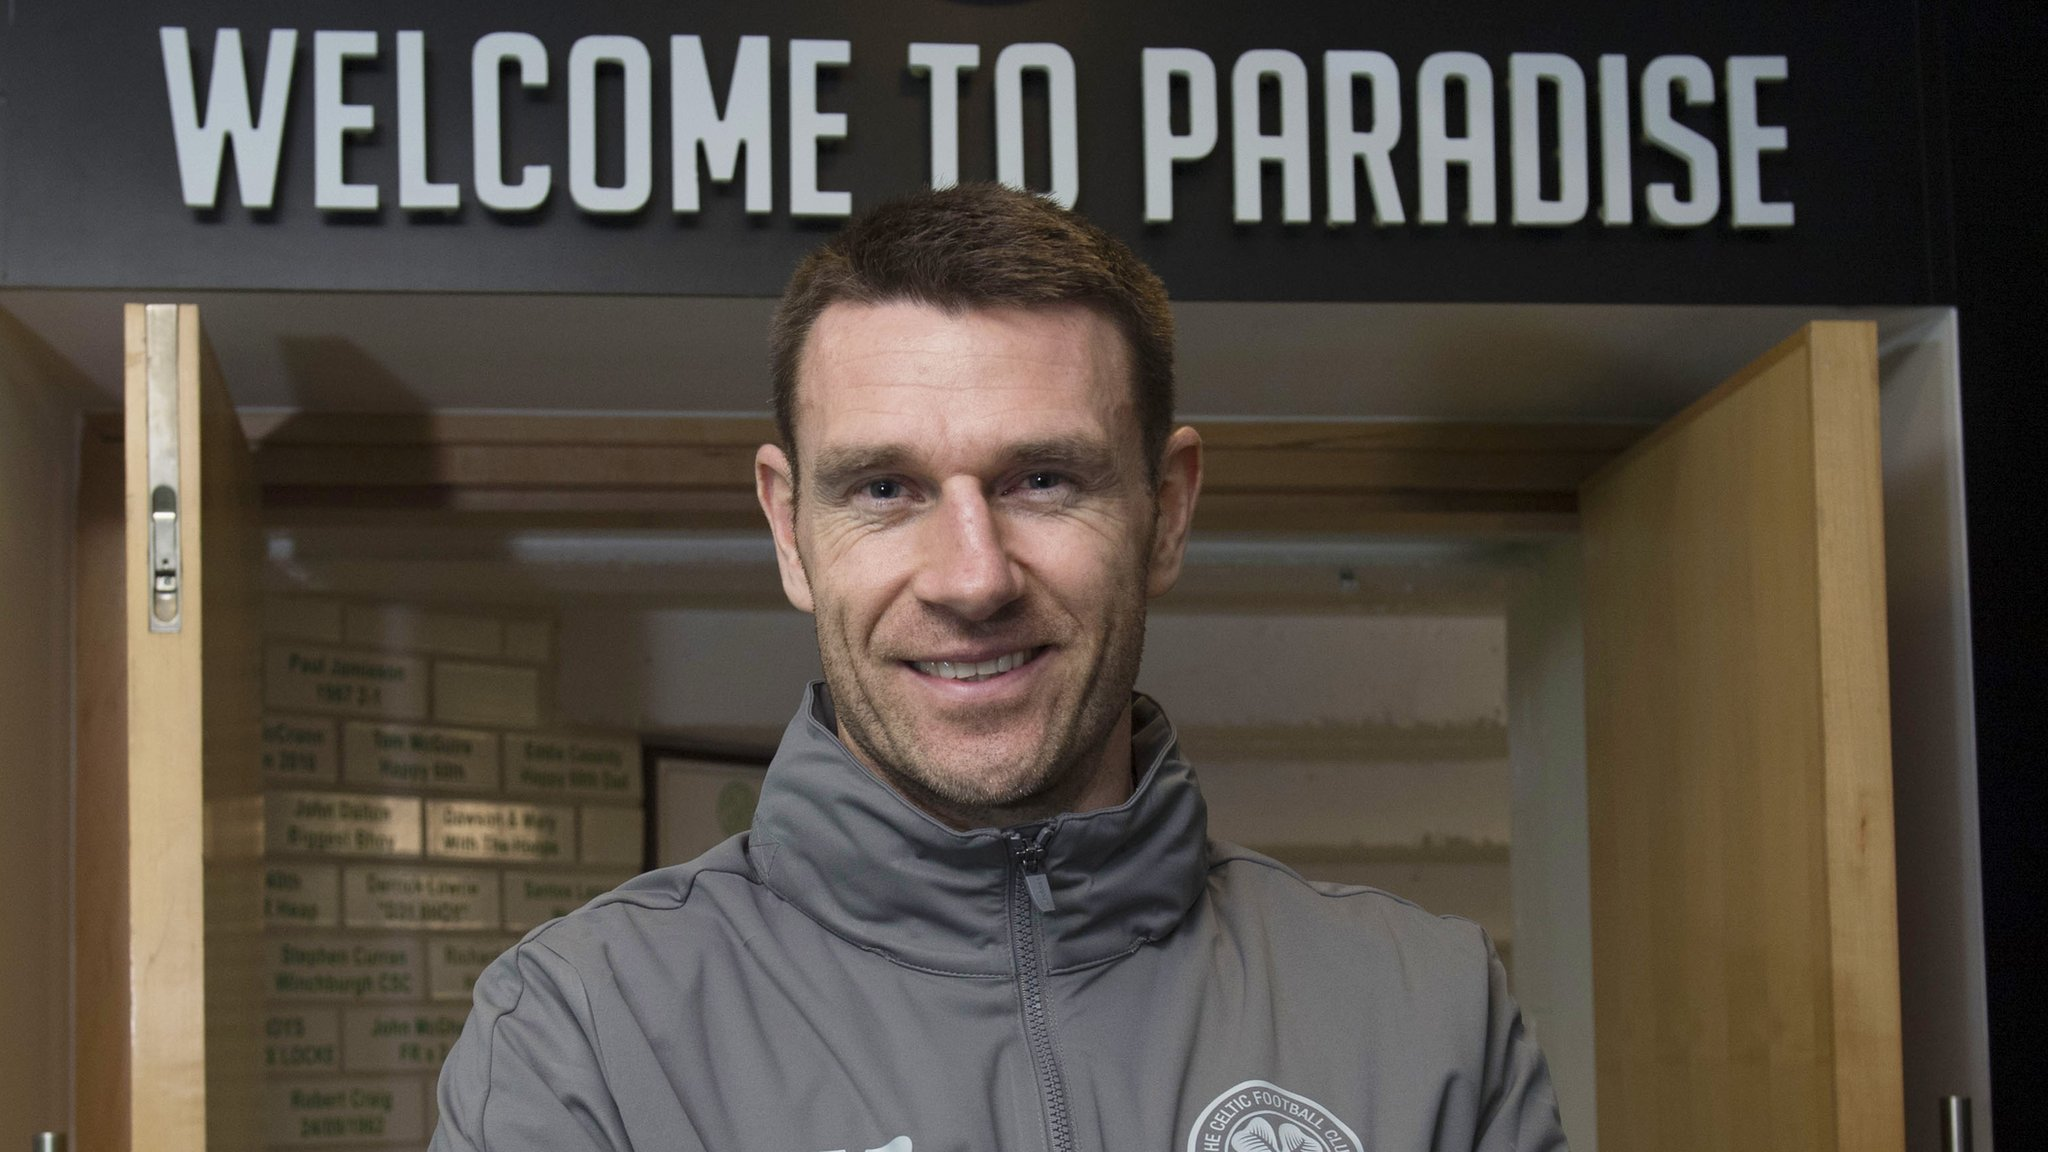 Celtic: Stephen McManus hopes to save club 'millions of pounds' as youth coach